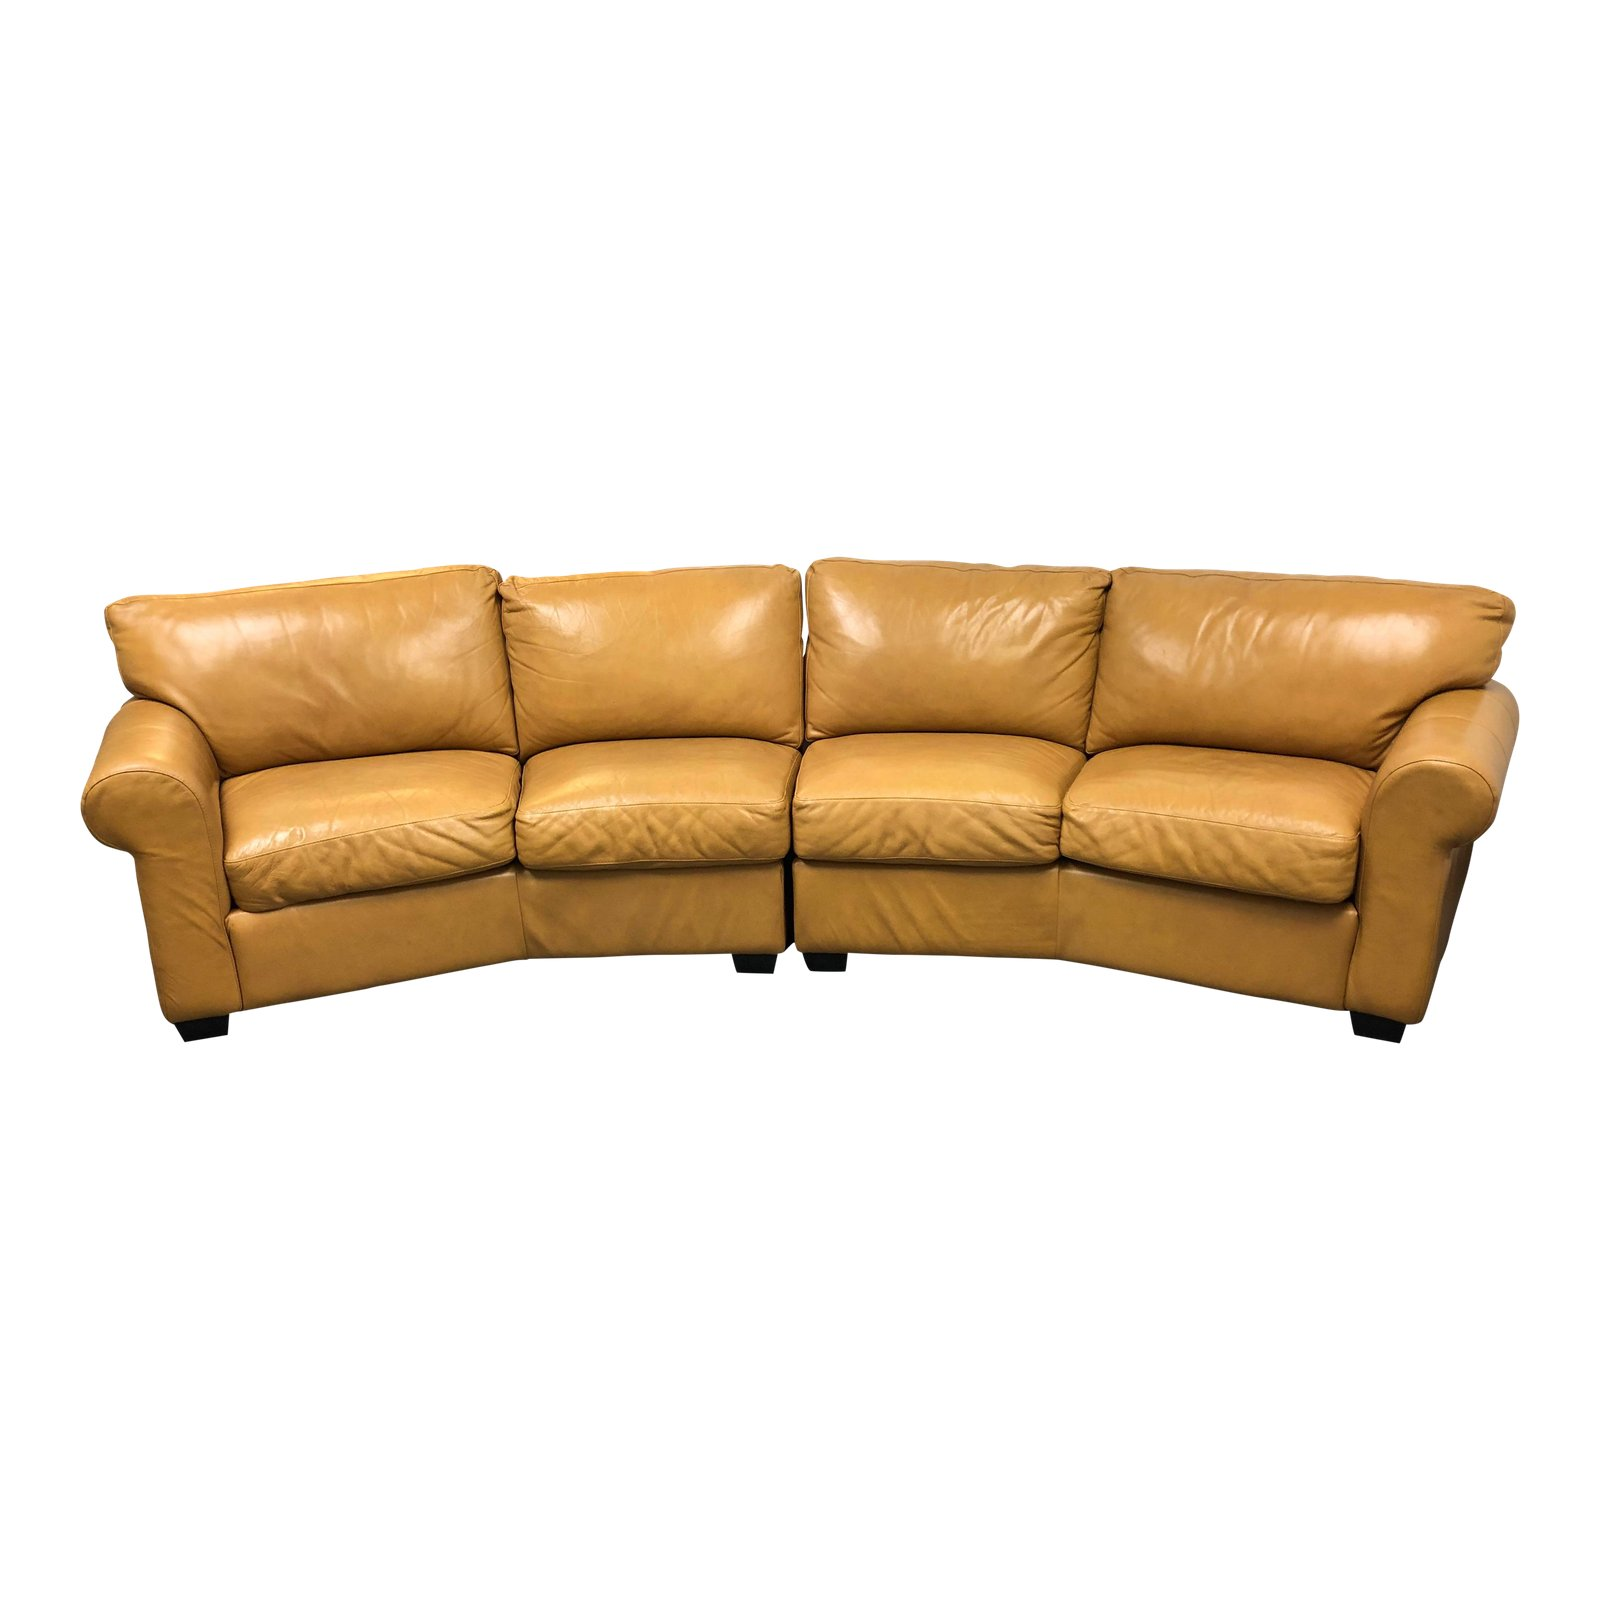 Polo Four Seater Navajo Palomino Leather 2 Pc. Curved Sofa ...